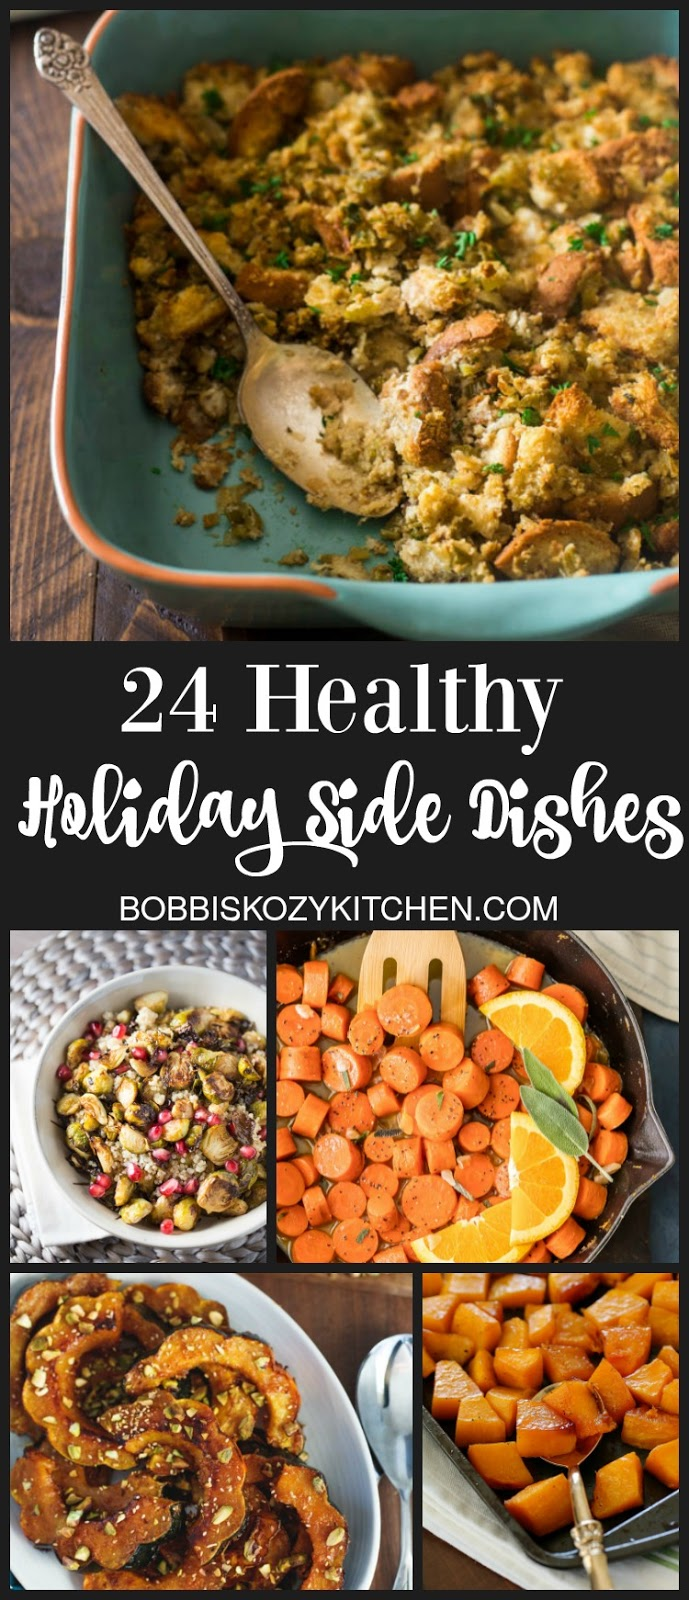 24 Healthy Holiday Side Dishes #holidayrecipes #sidedishes #sidedishrecipes #sides #recipes #recipe #thanksgiving #christmas| bobbiskozykitchen.com